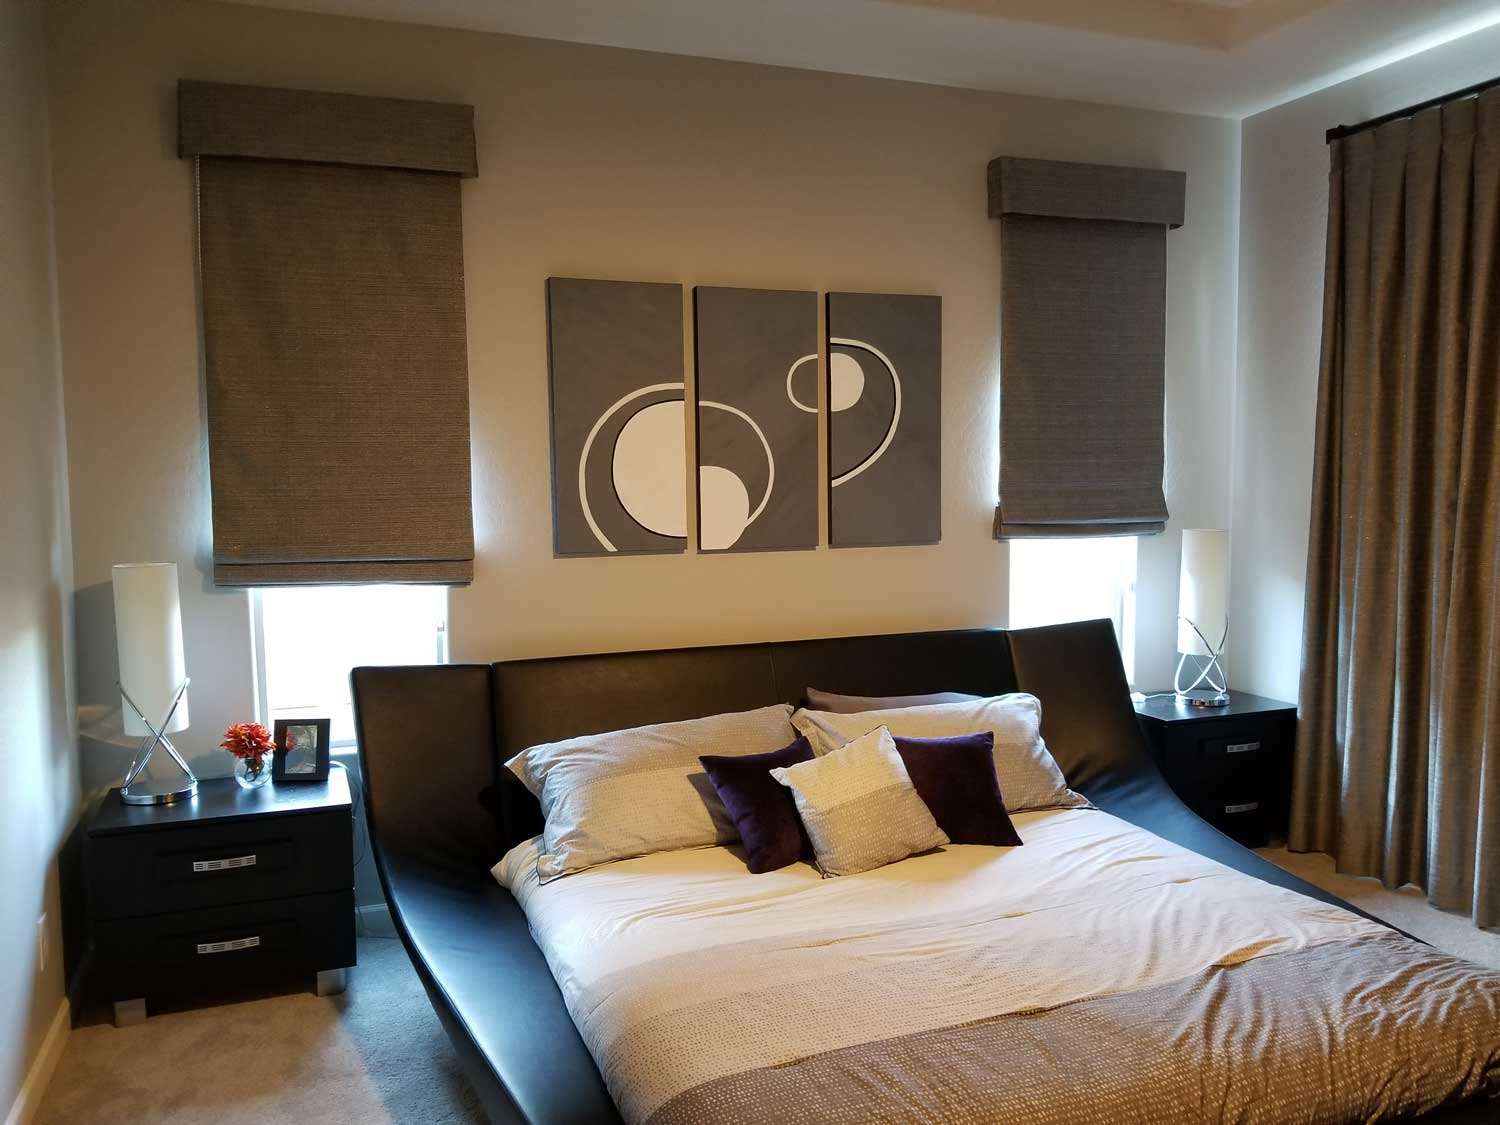 Flat Roman Shades with Valance in a furnished bedroom